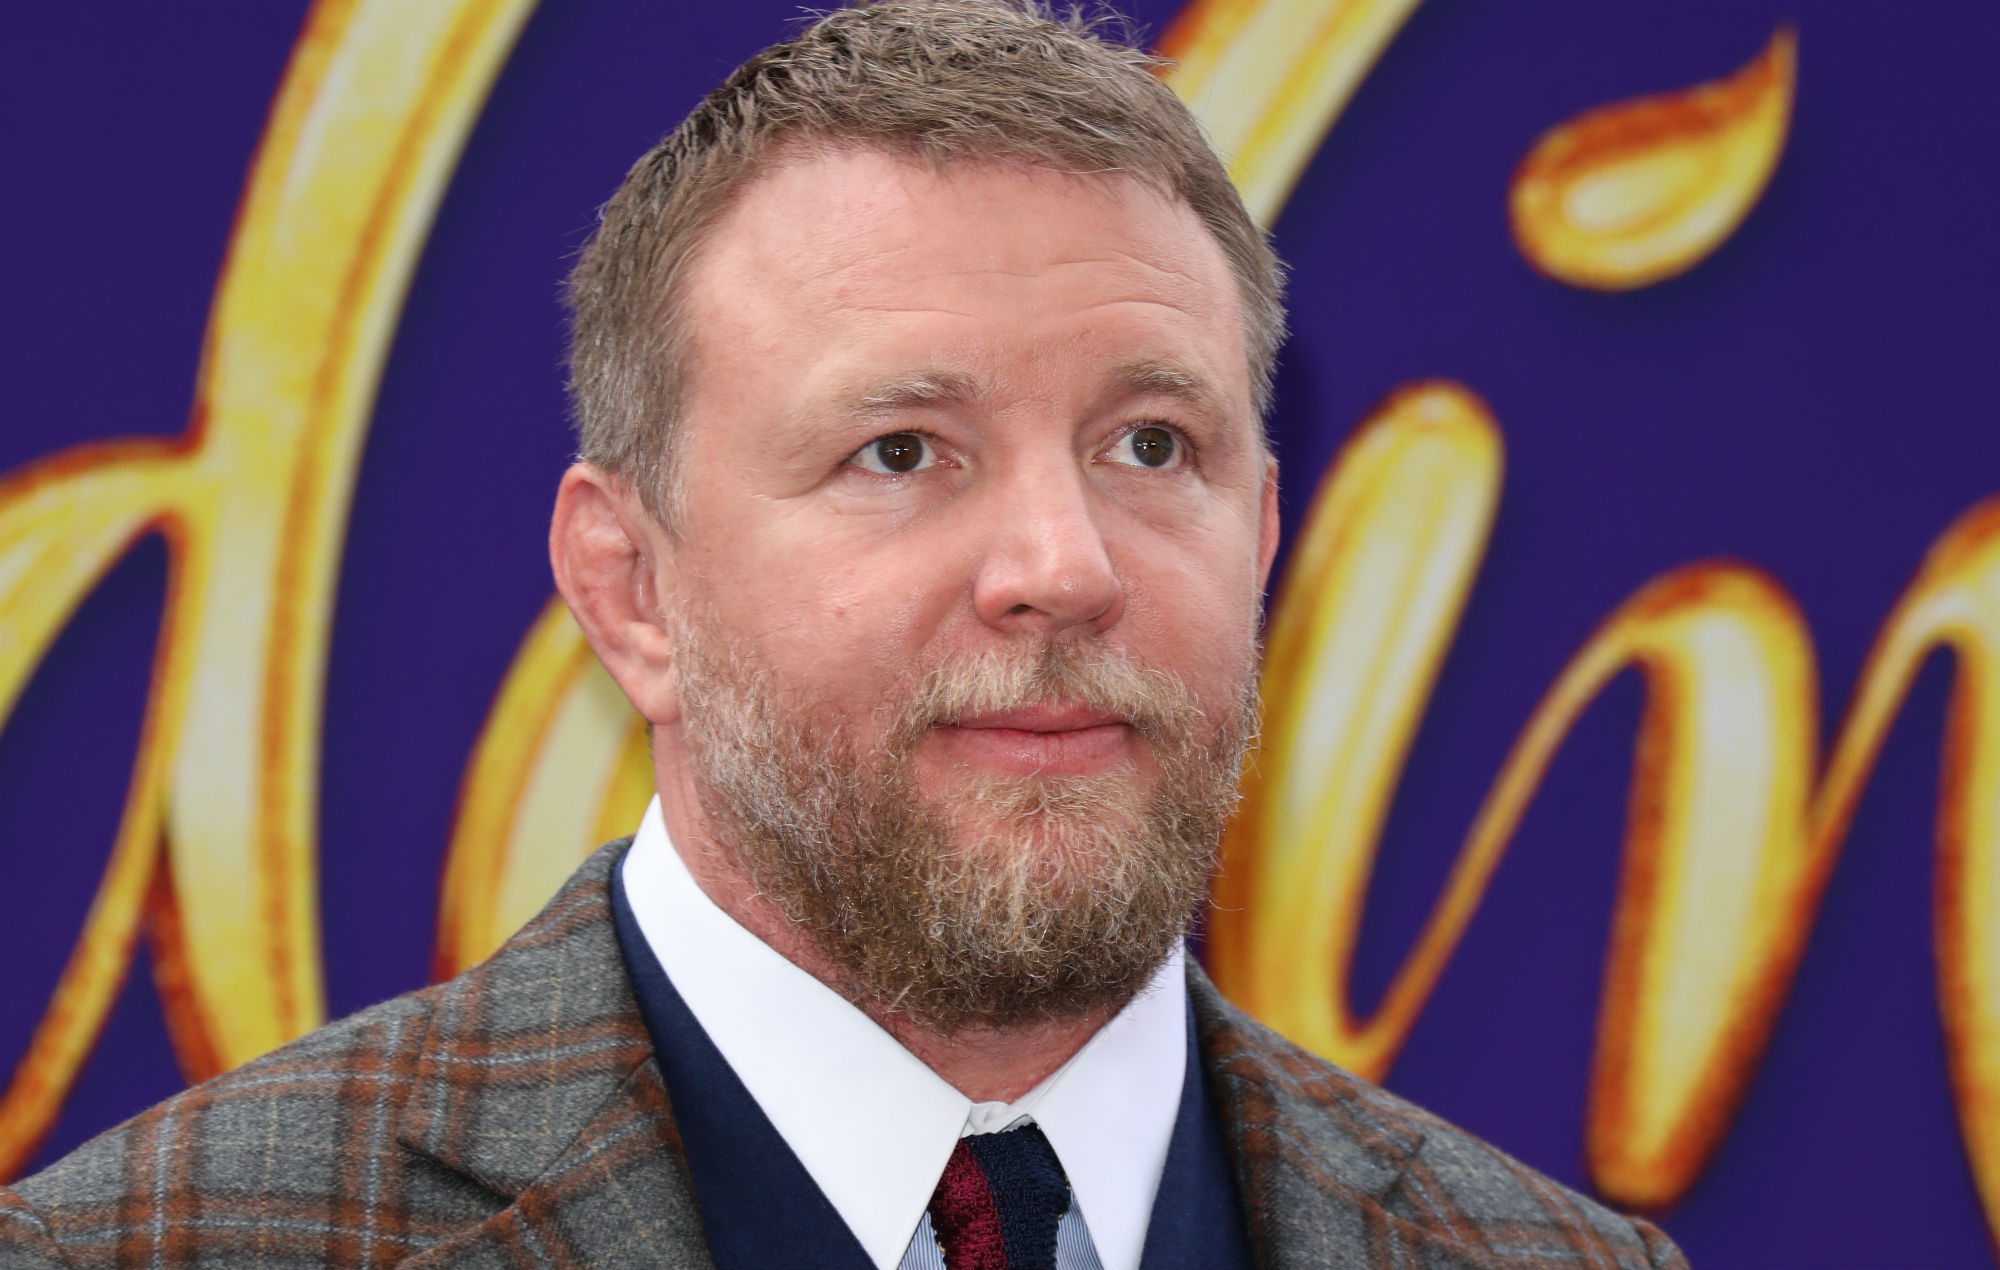 Guy Ritchie's filmography